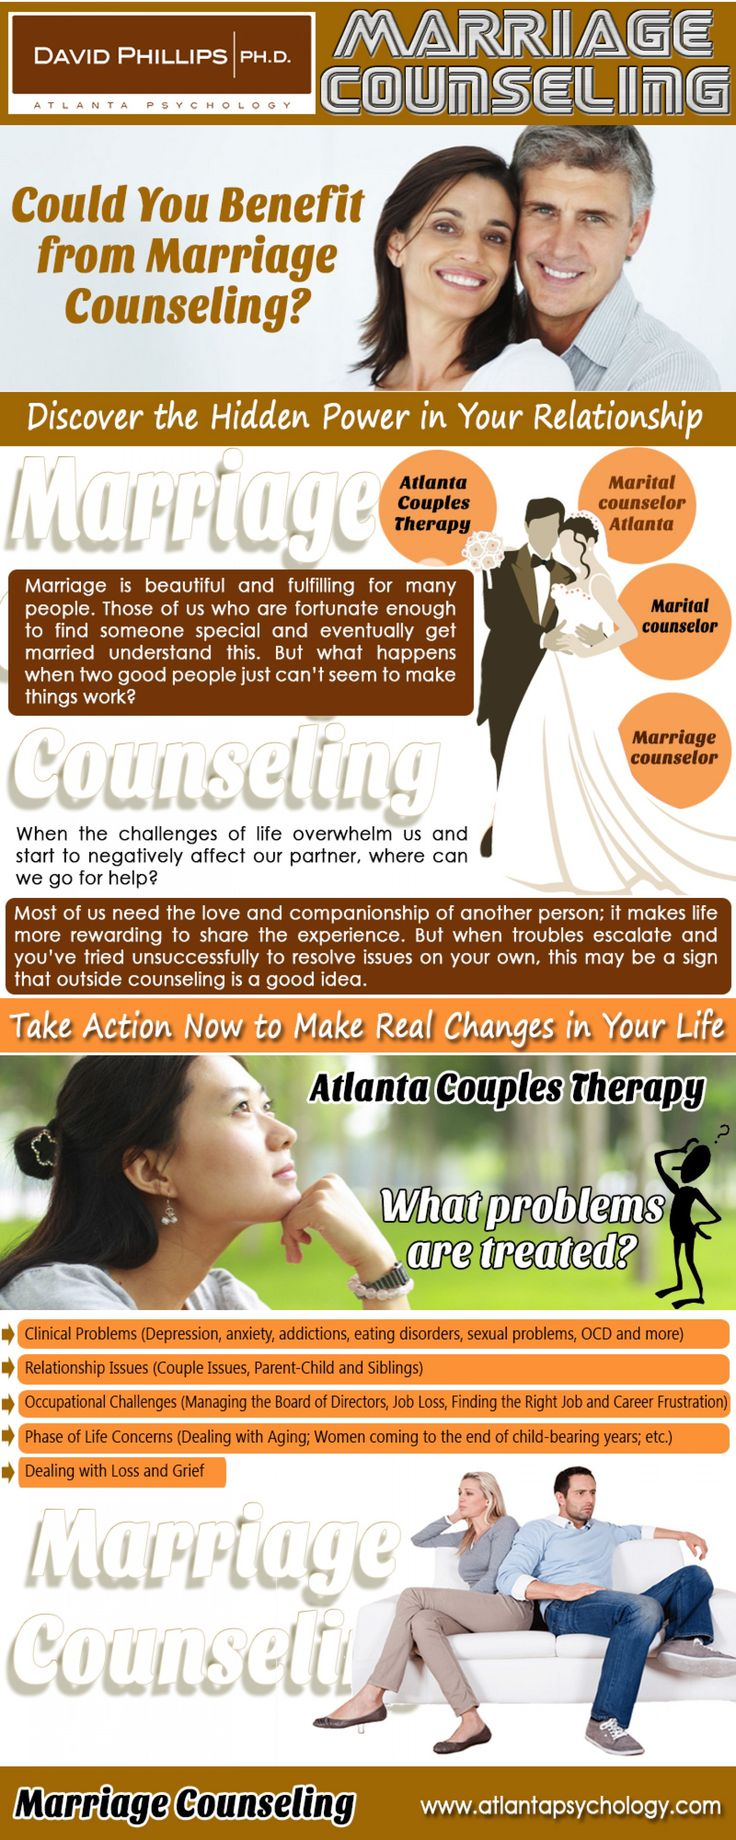 Check this link right here http://www.atlantapsychology.com/marital-counseling/ for more information on Atlanta Couples Therapy. Atlanta Couples Therapy is aimed at resolving the problem between husband and wife so that they can lead a happy life devoid of serious conflicts and heated arguments. Being married and in a relationship that is healthy is a lot of hard work. It requires work from both parties involved in the relationship.